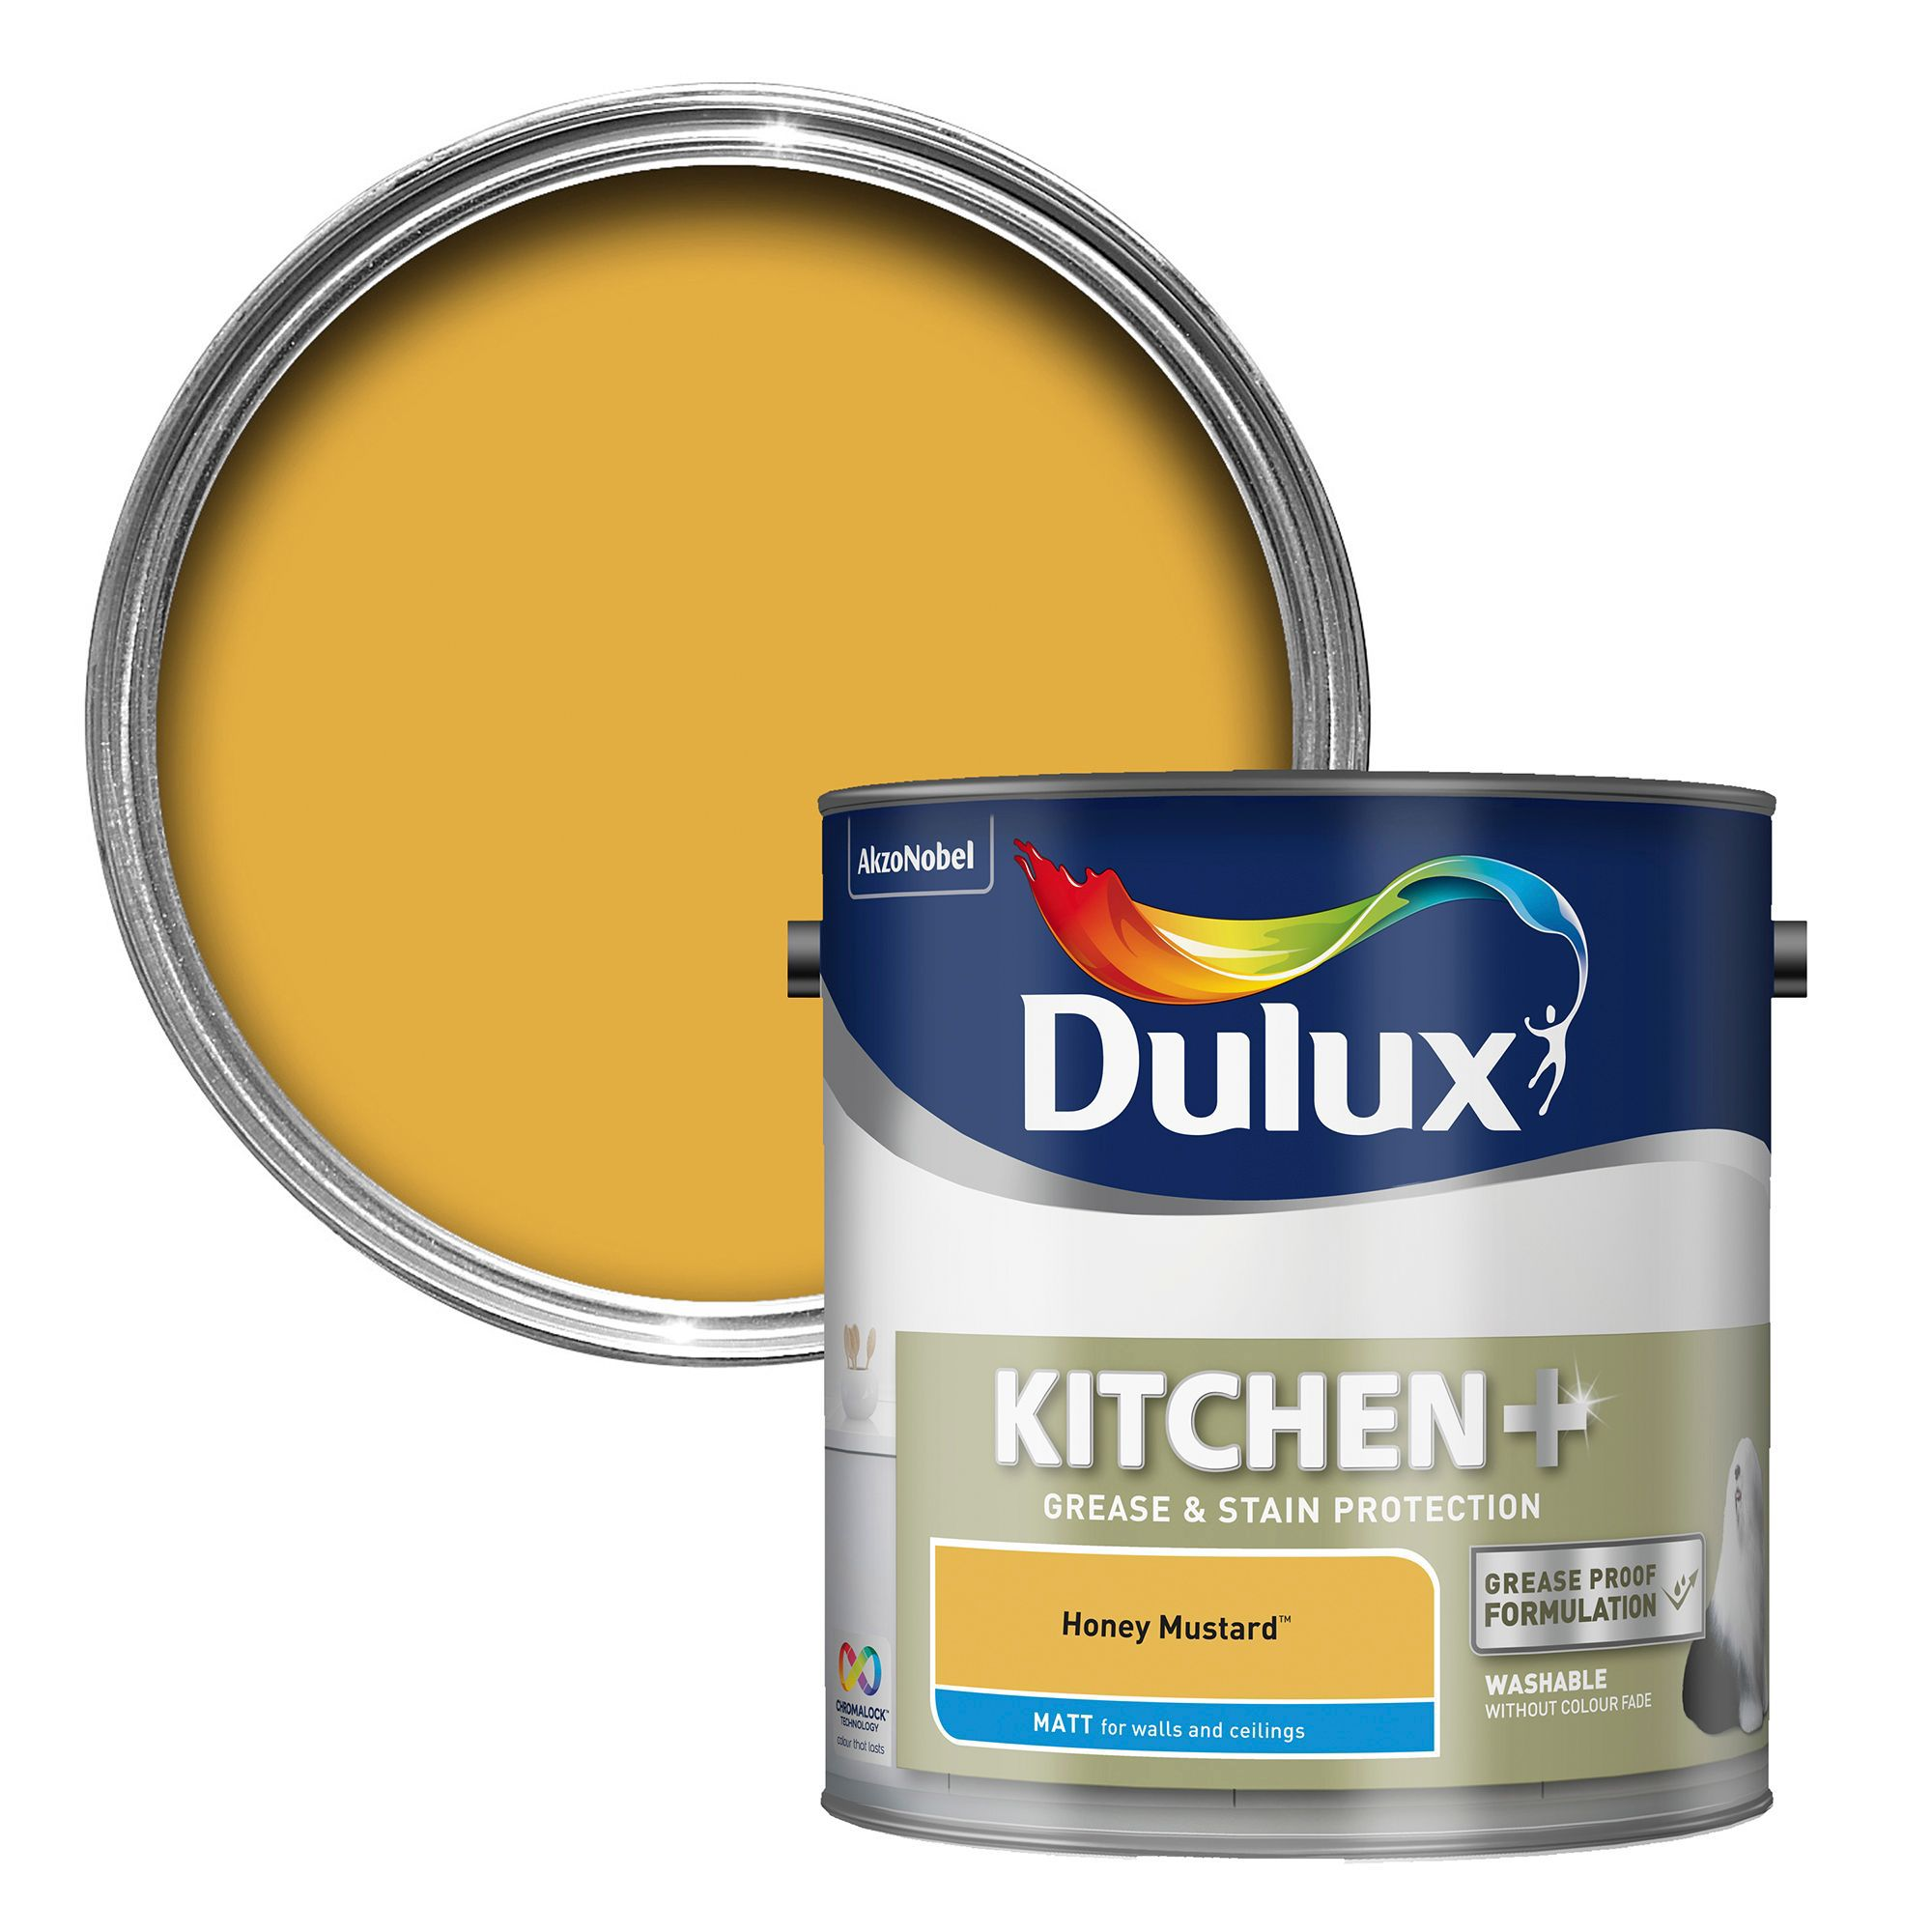 Mustard Color Paint For Kitchen Dulux Kitchen Honey Mustard Matt Emulsion Paint 2 5l Departments